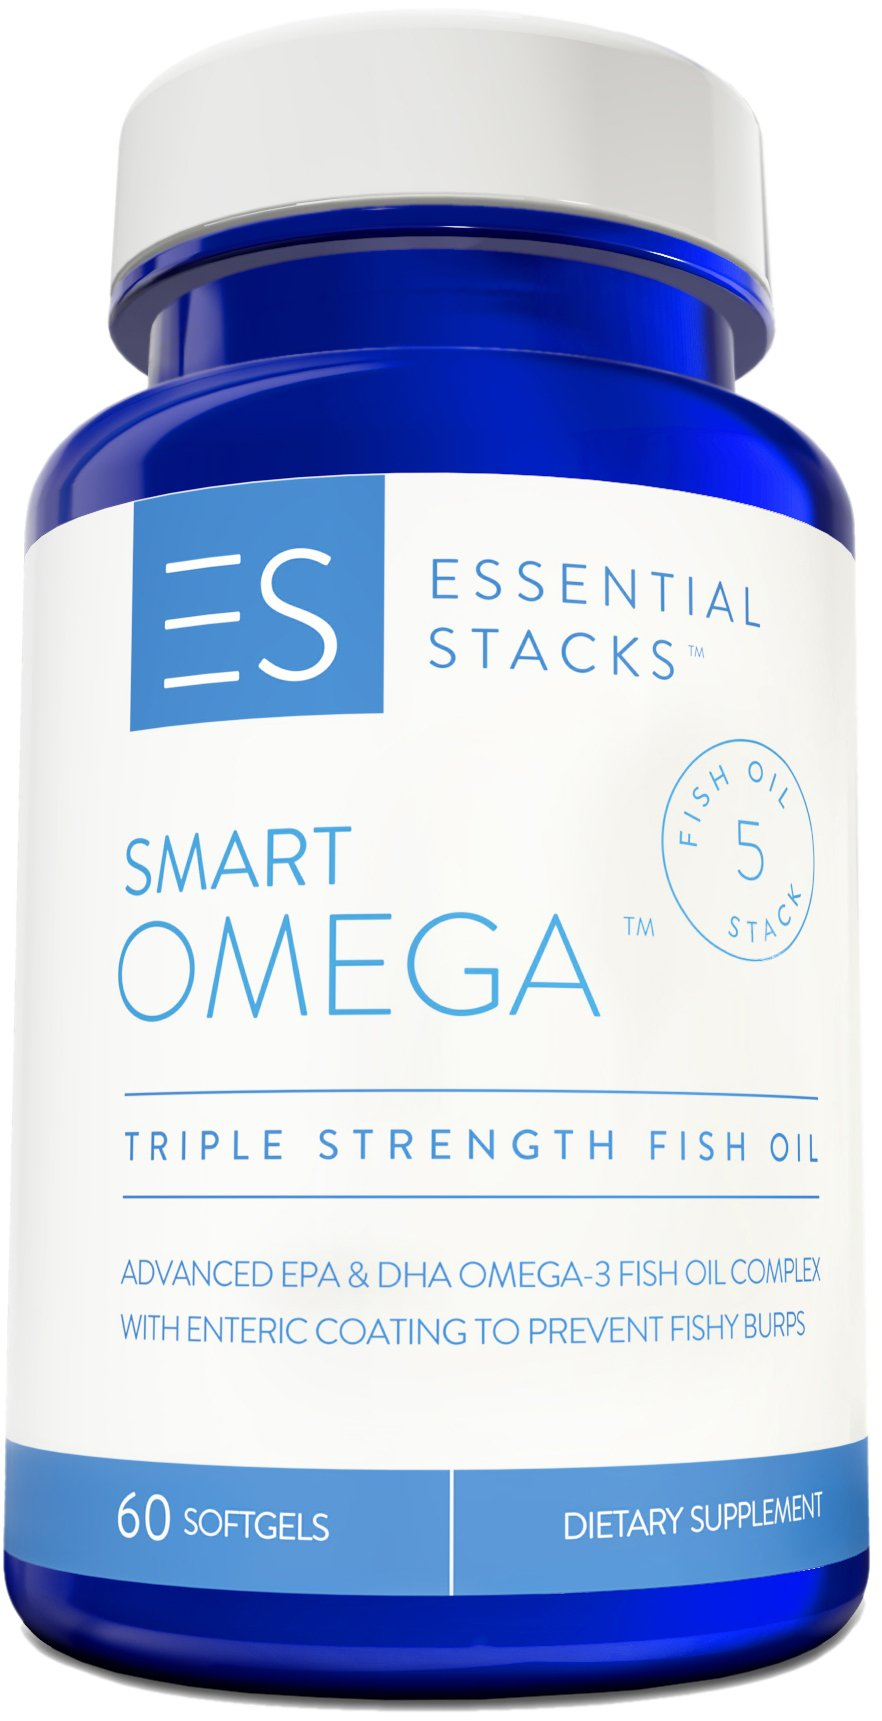 Burpless Fish Oil Omega 3 - Triple Strength (1400mg EPA DHA Per Serving), Enteric Coated, Molecularly Distilled & No Fishy Burps OR Aftertaste. by Essential Stacks